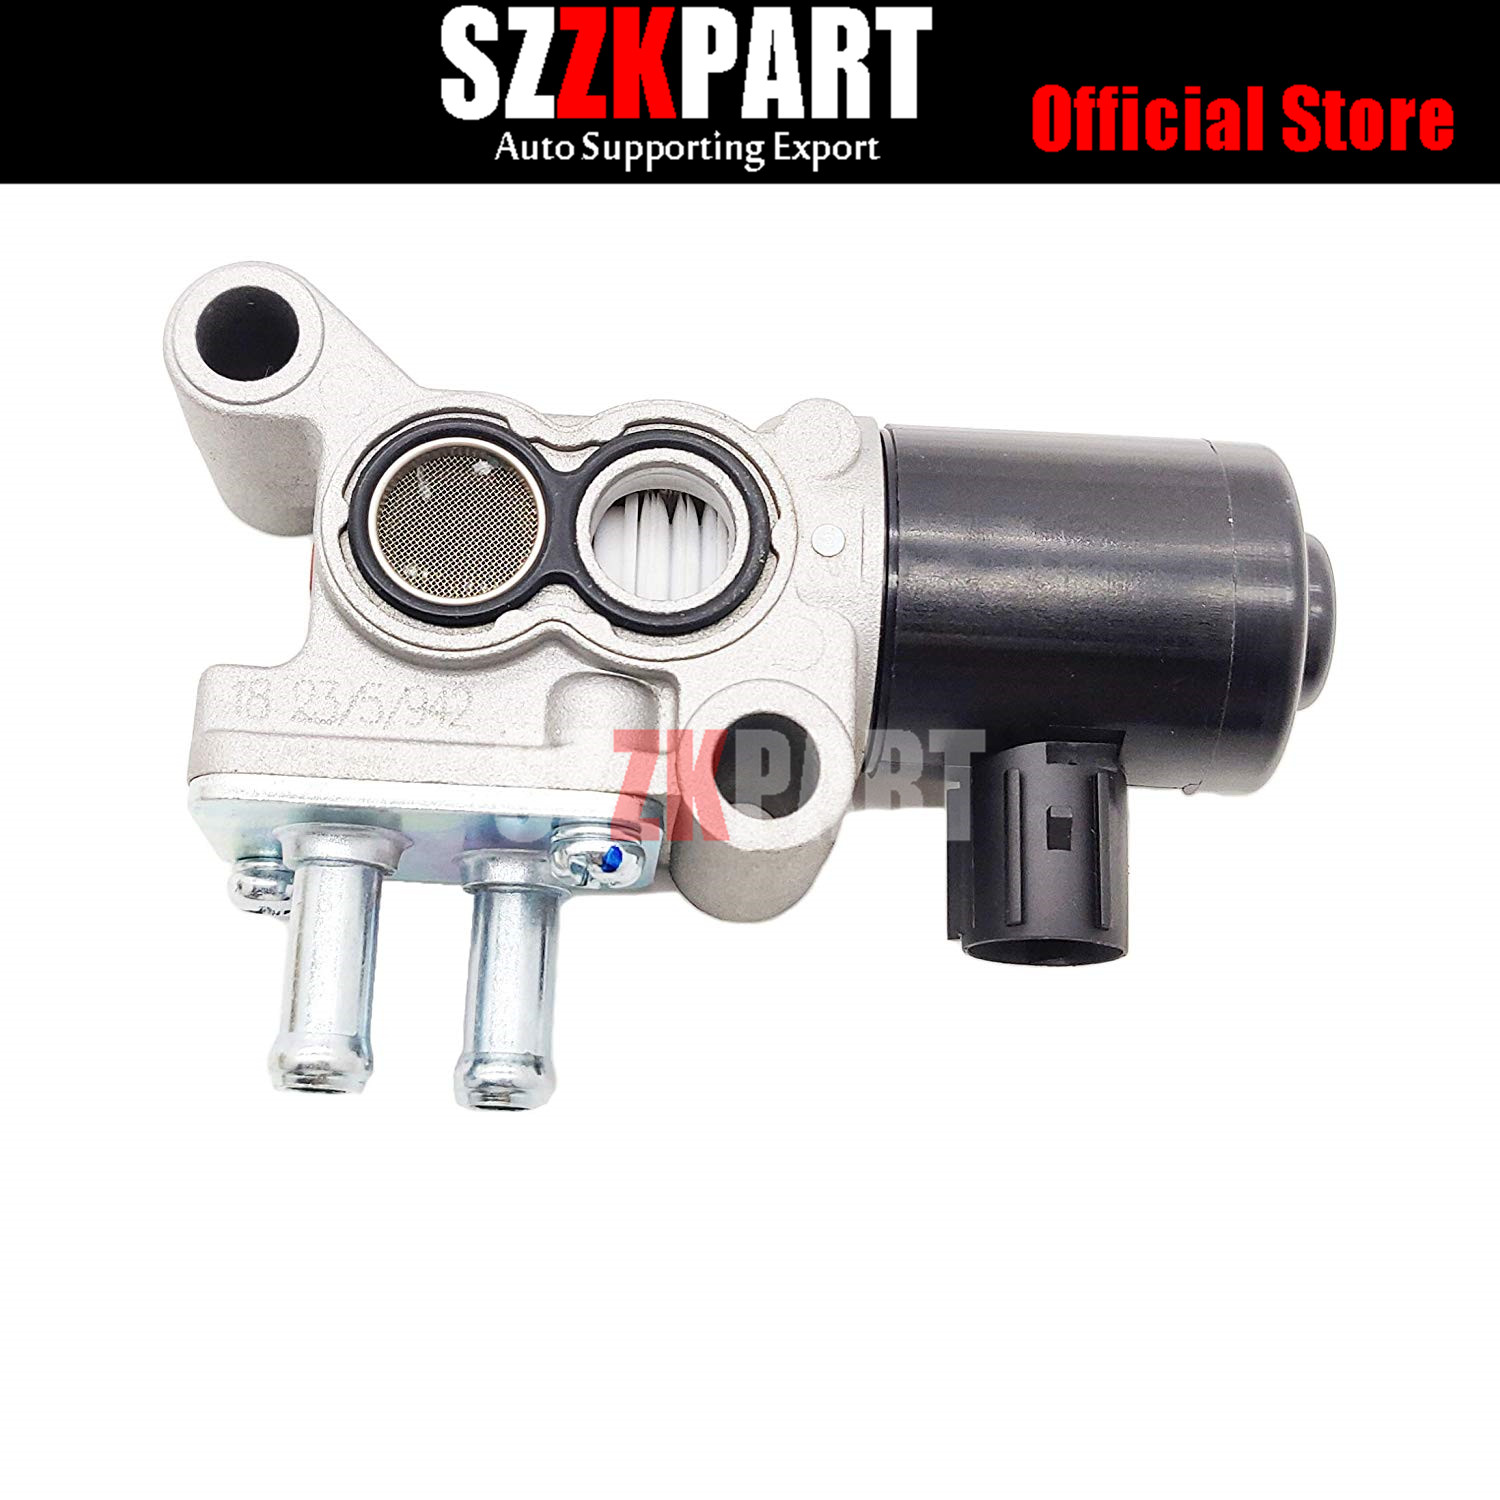 IAC  IDLE AIR CONTROL VALVE / Motor For Honda Civic OEM 36450-P2J-J01 36450P2JJ01 Free Shipping